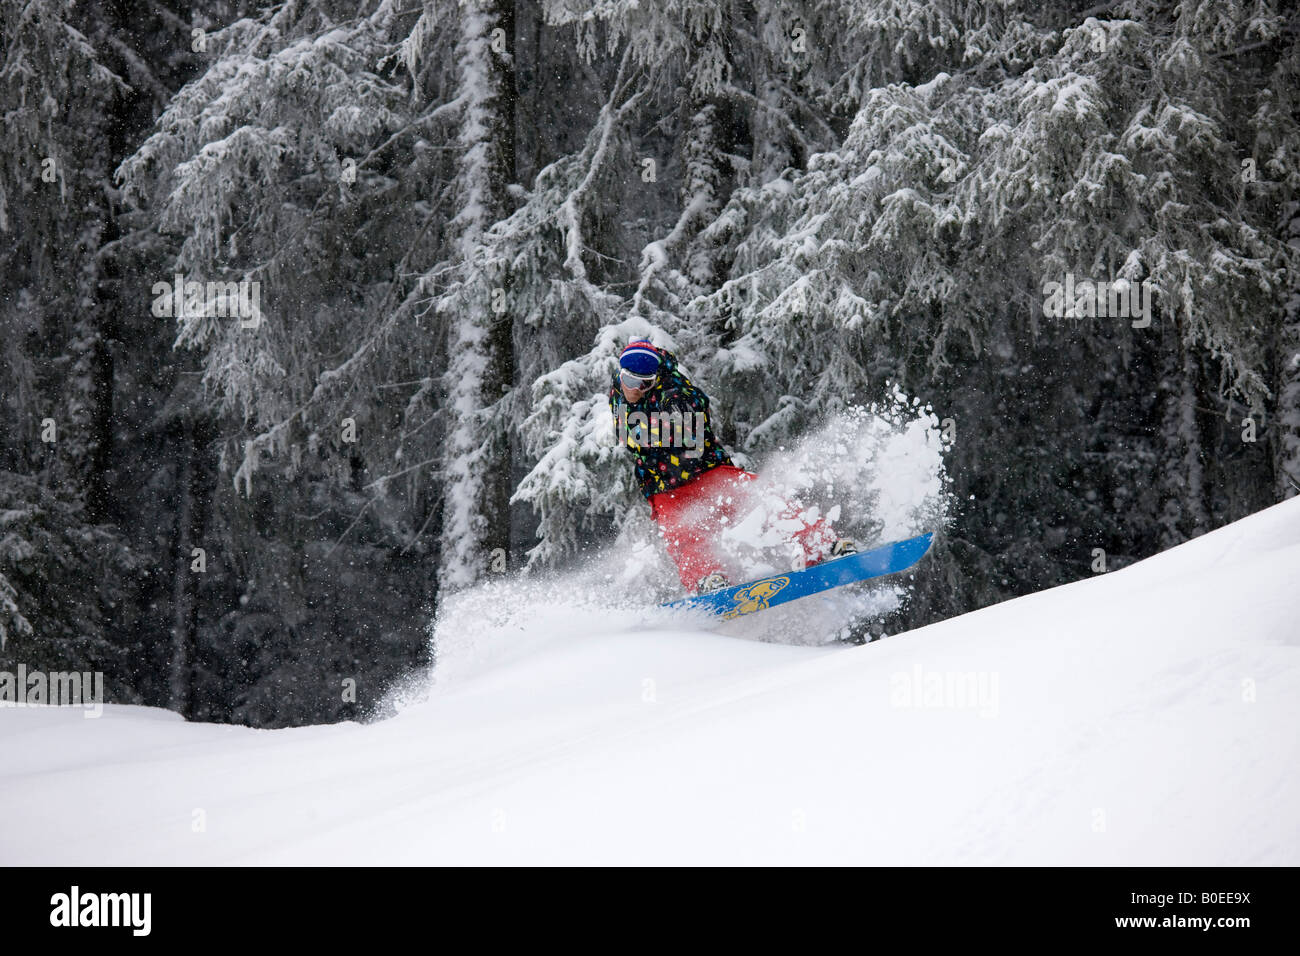 Jo Howard slashes the powder snow off piste in the trees - Stock Image